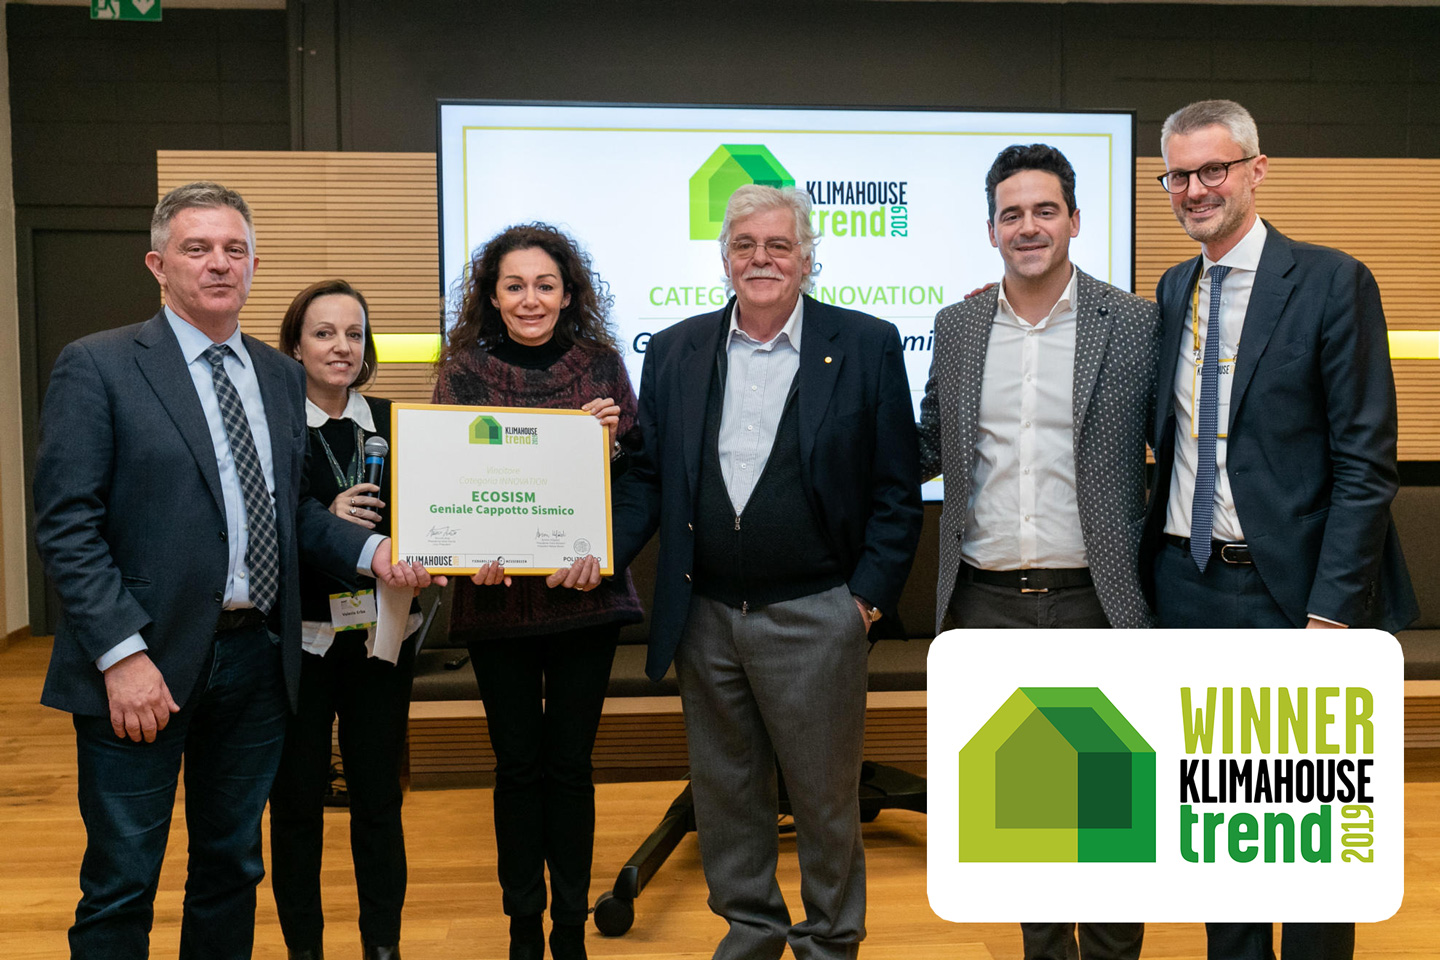 "La cerimonia di premiazione del Klimahouse Trend Award 2019: assegnazione premio Vincitore categoria INNOVATION e Categoria ABSOLUTE a ECOSISM srl per ""Geniale Cappotto Sismico"" (Photo Credit: Marco Parisi)"